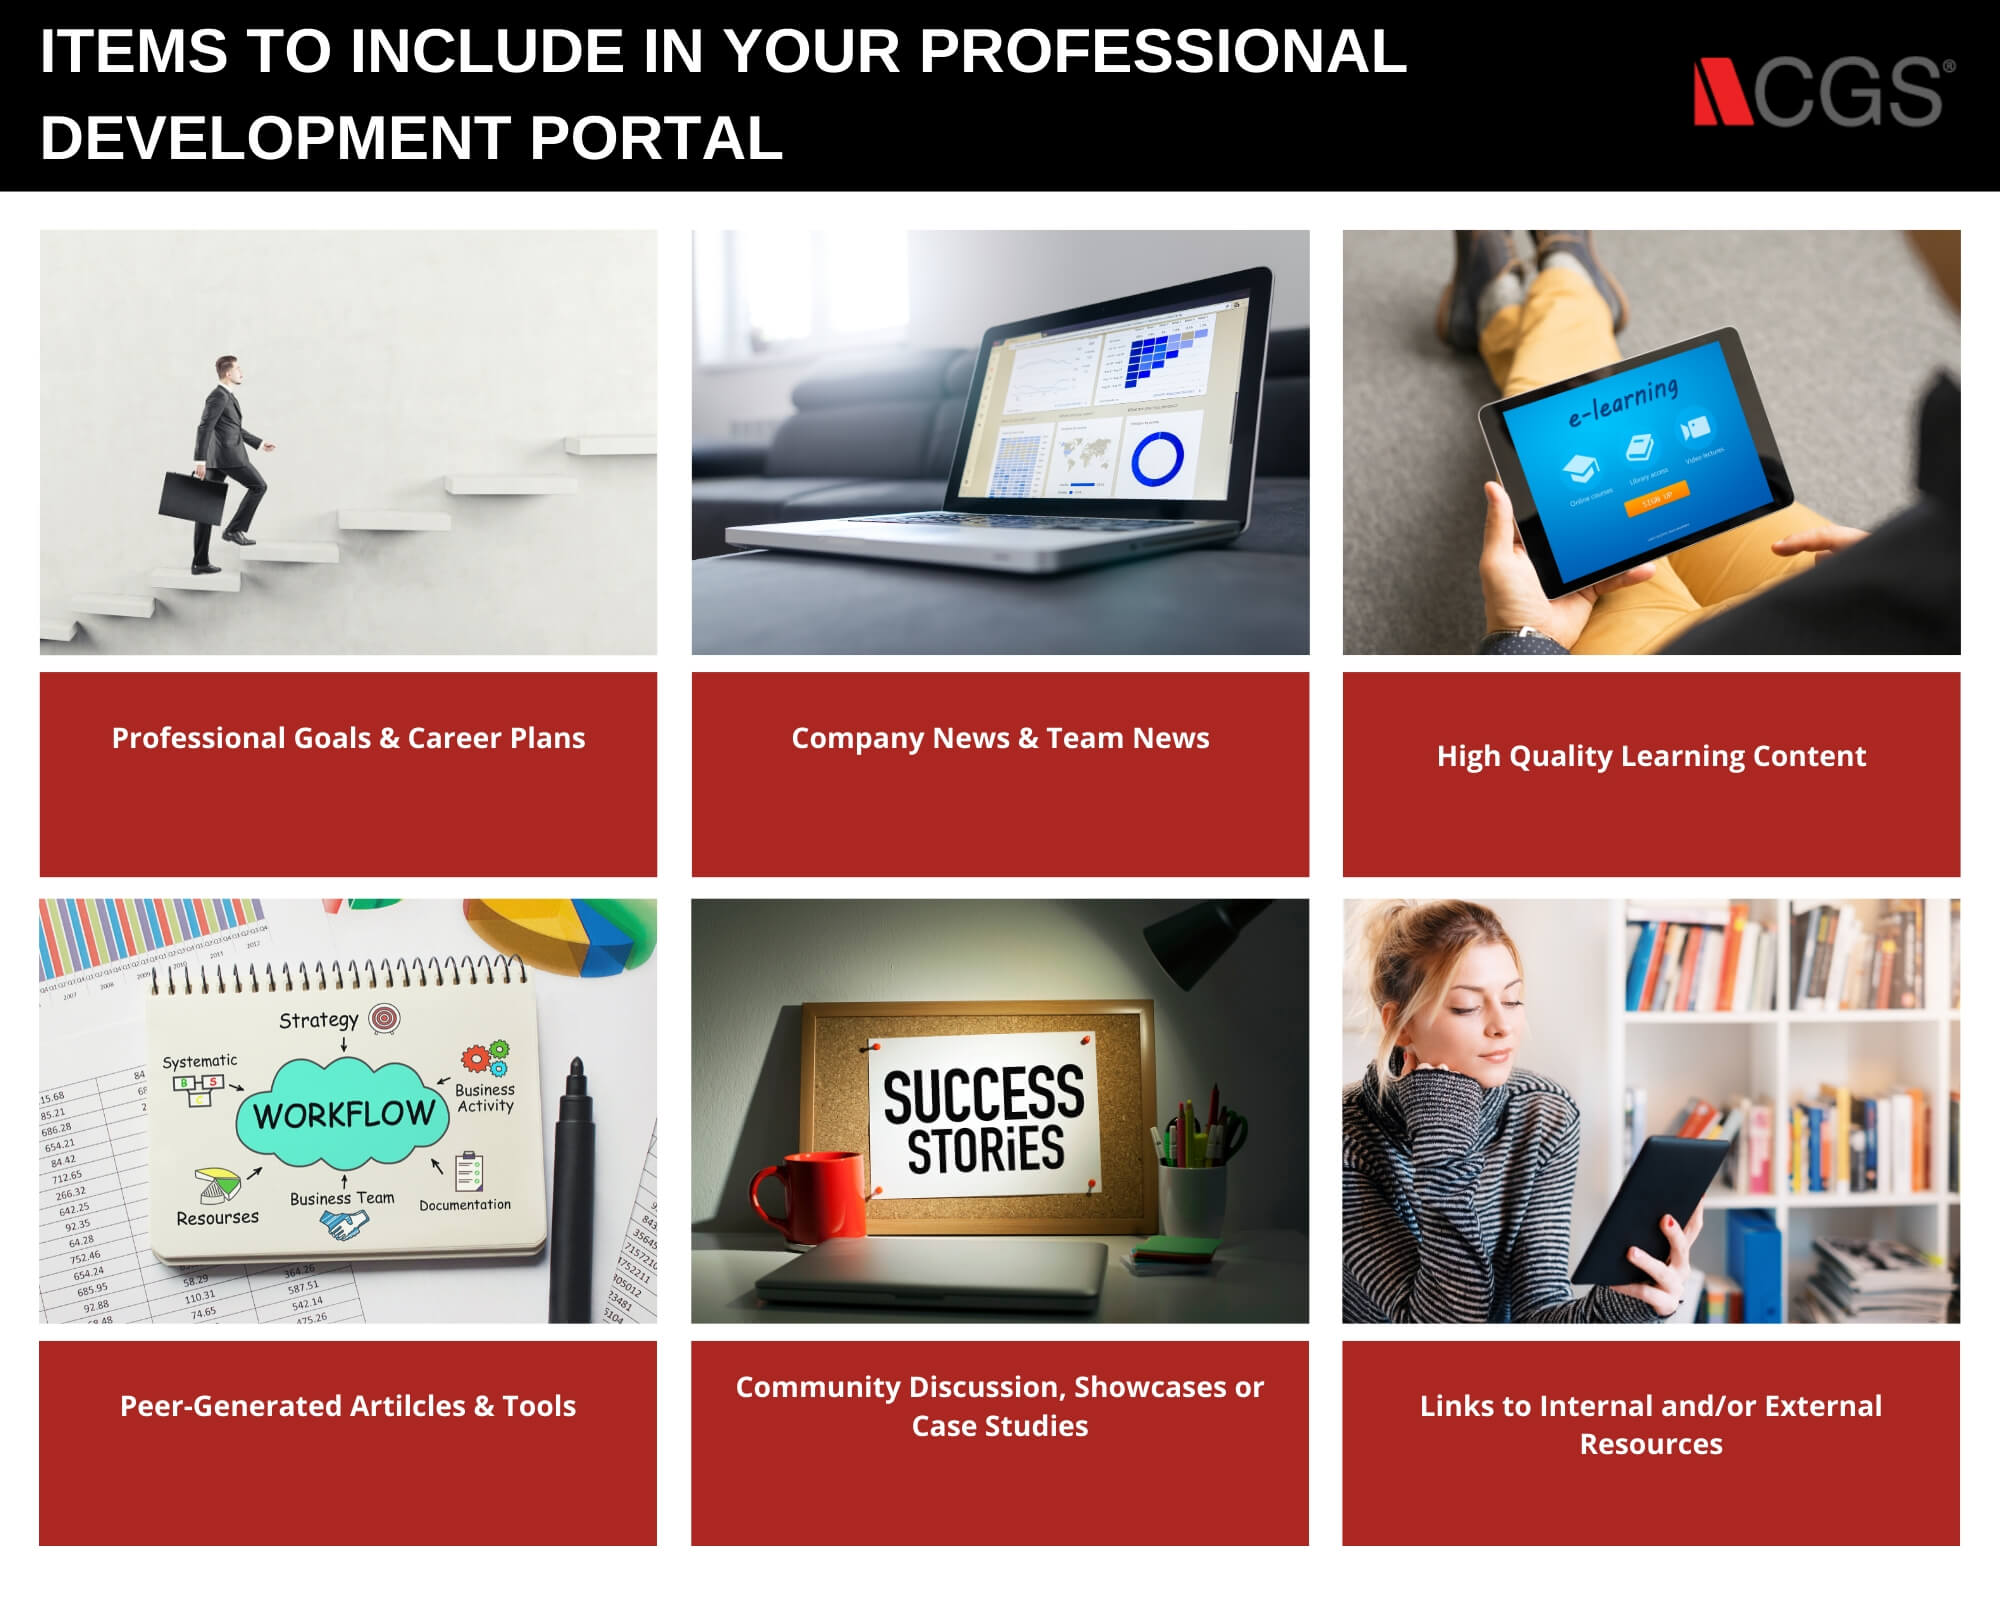 Items to include in a professional development portal